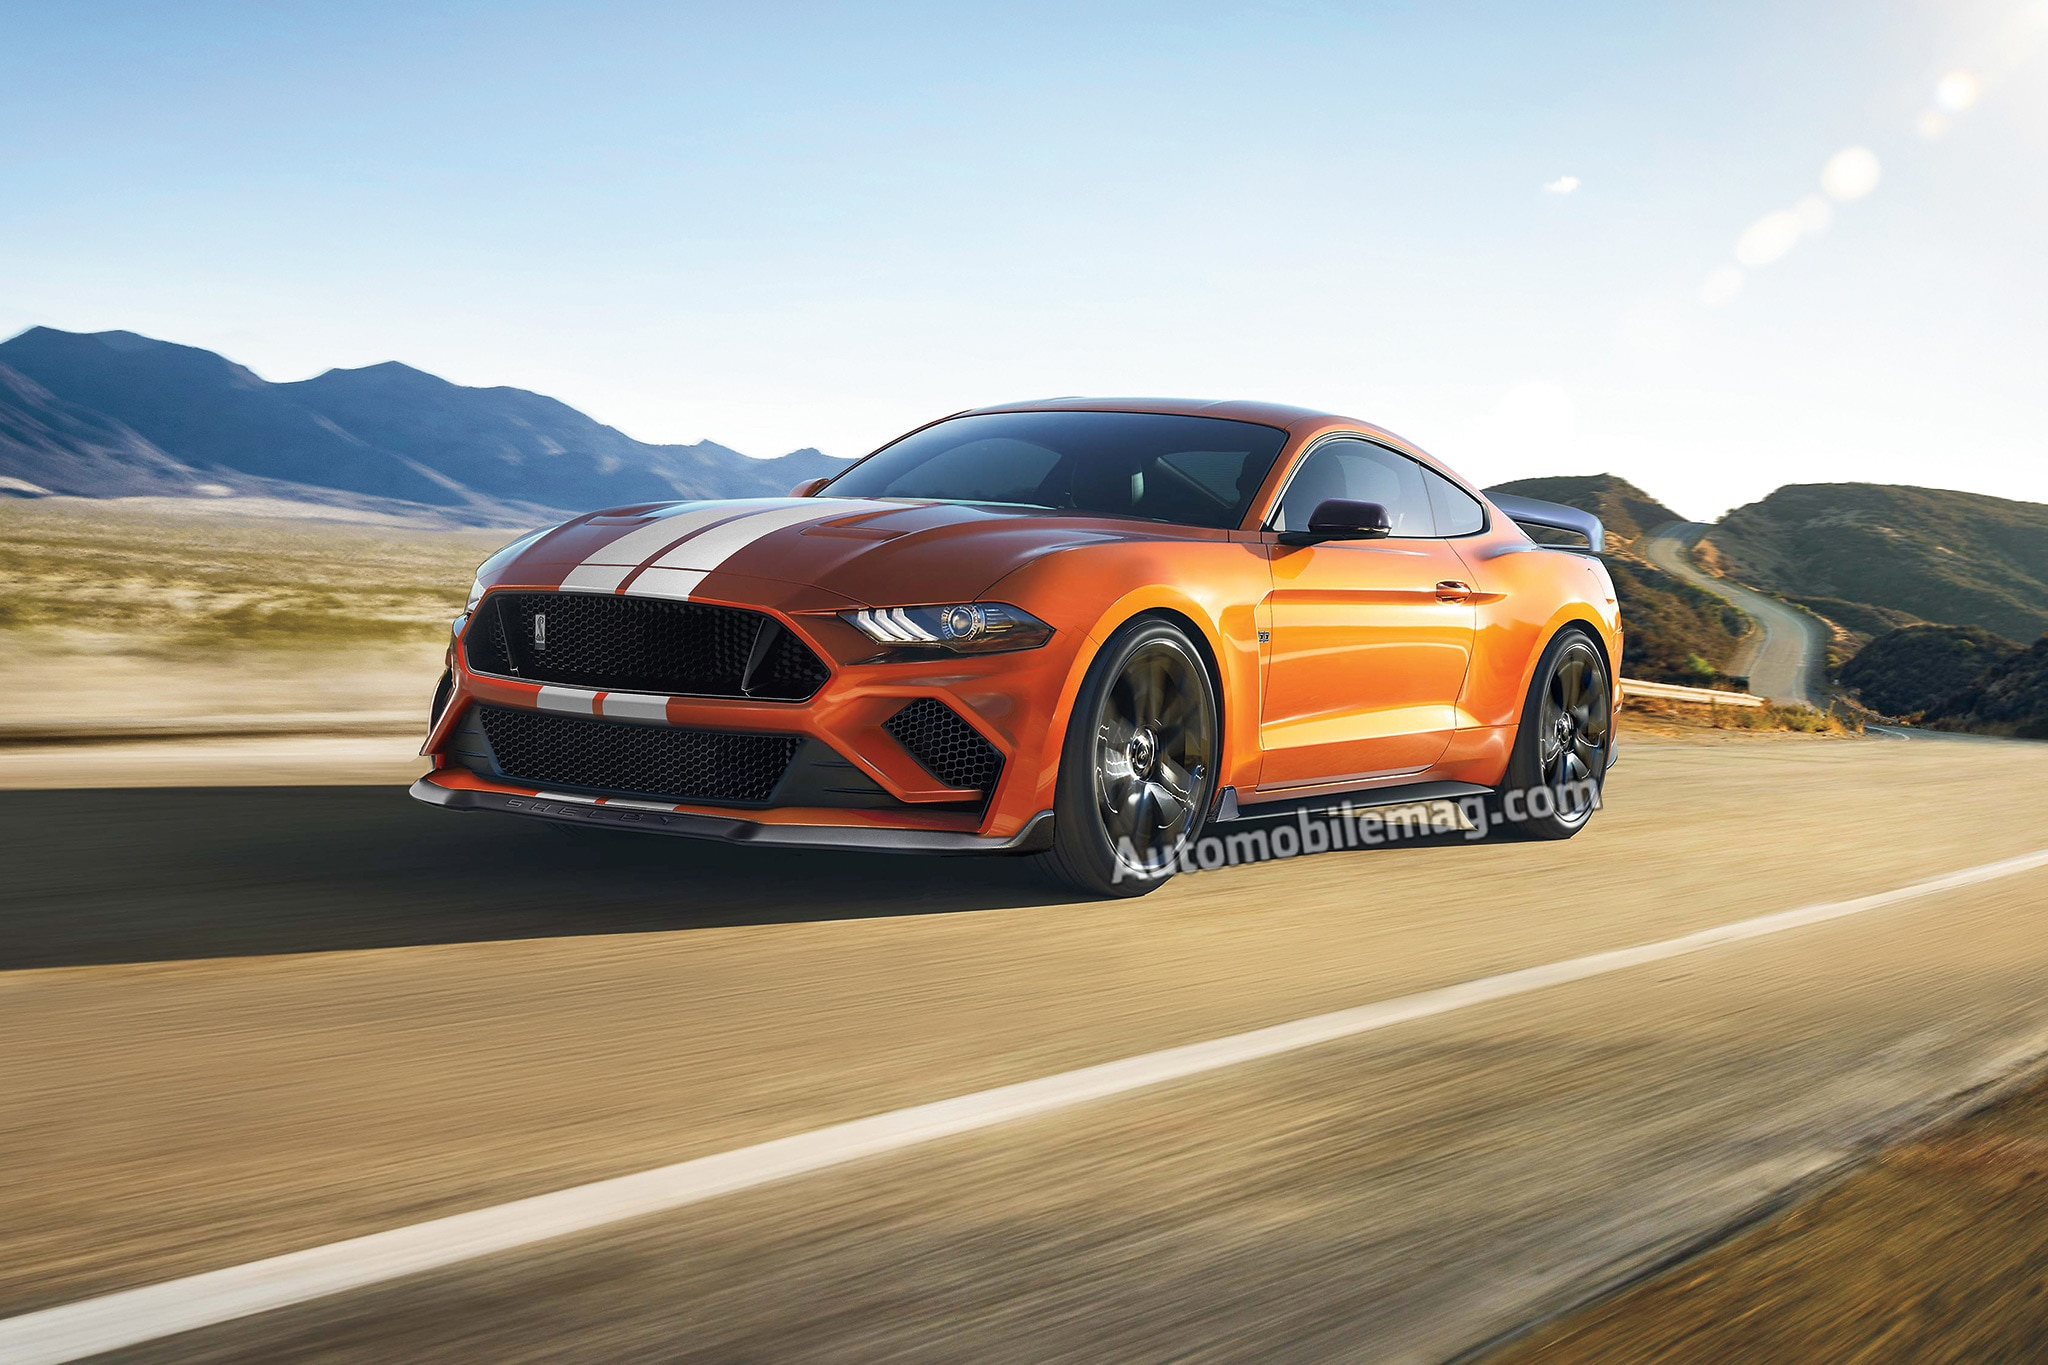 2019 ford mustang shelby gt500 confirmed with 700. Black Bedroom Furniture Sets. Home Design Ideas